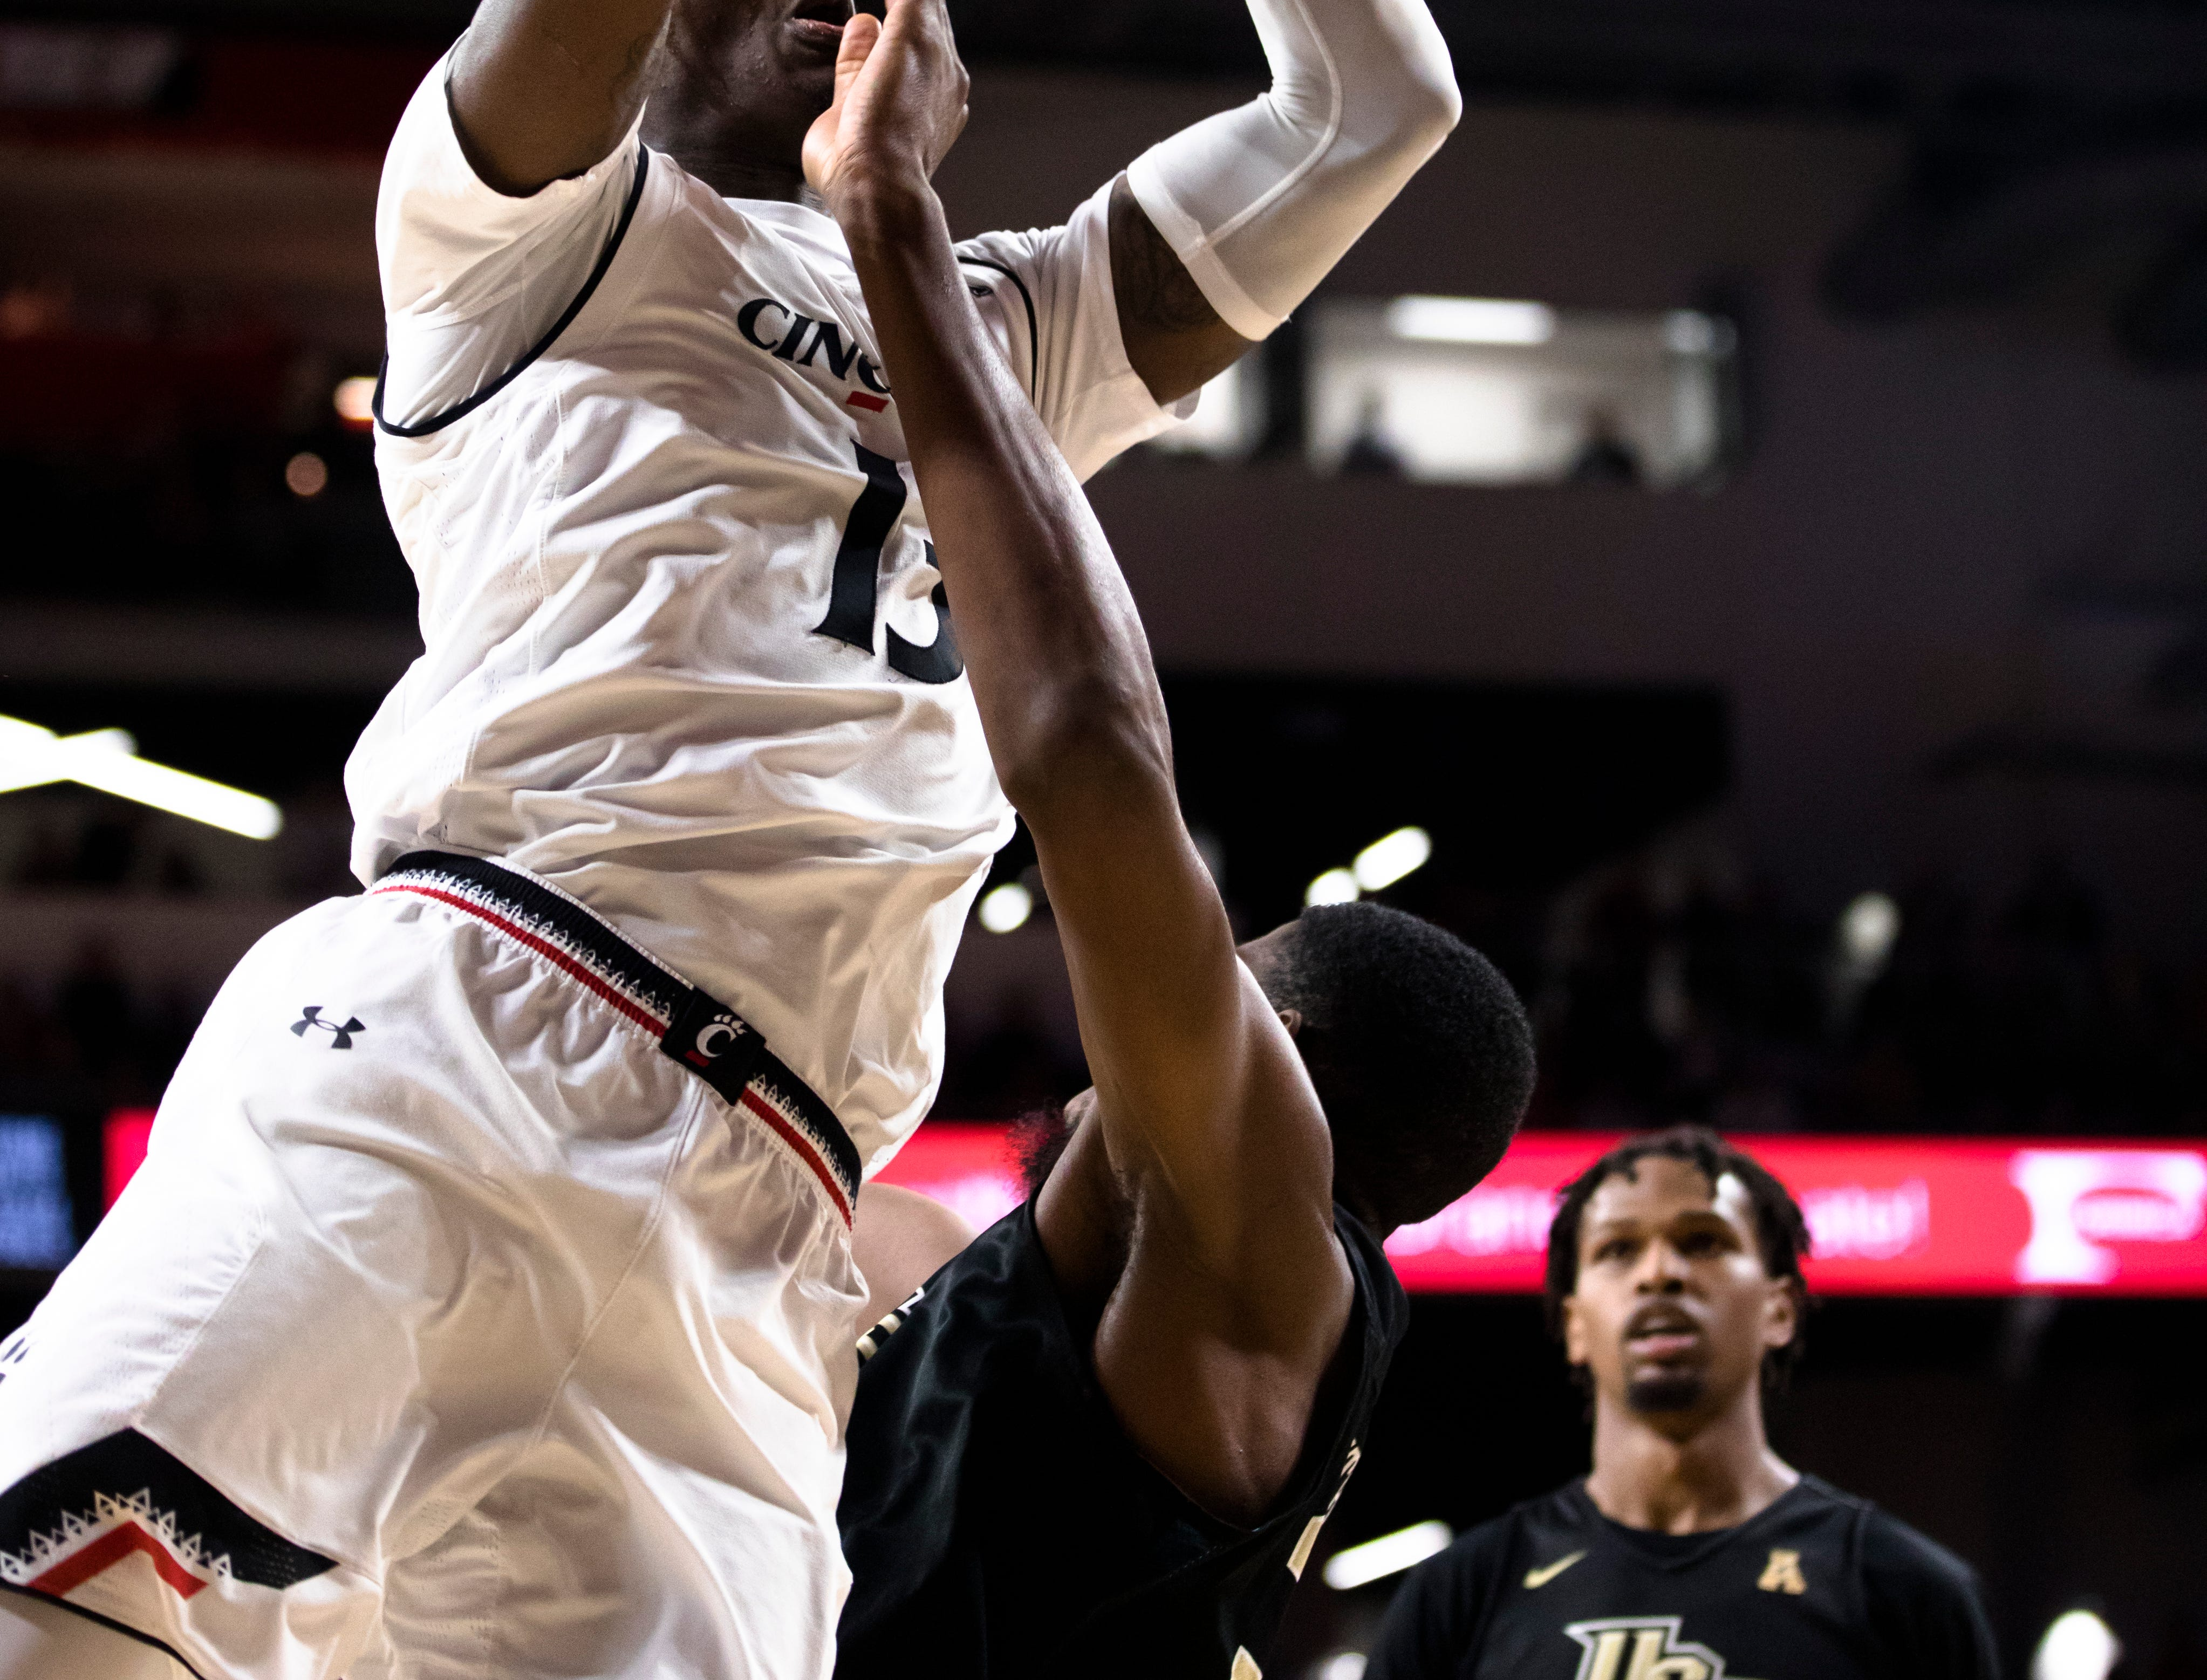 Cincinnati Bearcats forward Trevon Scott (13) shoots as UCF Knights forward Collin Smith (35) draws a charge call in the first half of the NCAA men's basketball game between Cincinnati Bearcats and UCF Knights on Thursday, Feb. 21, 2019, at Fifth Third Arena in Cincinnati.